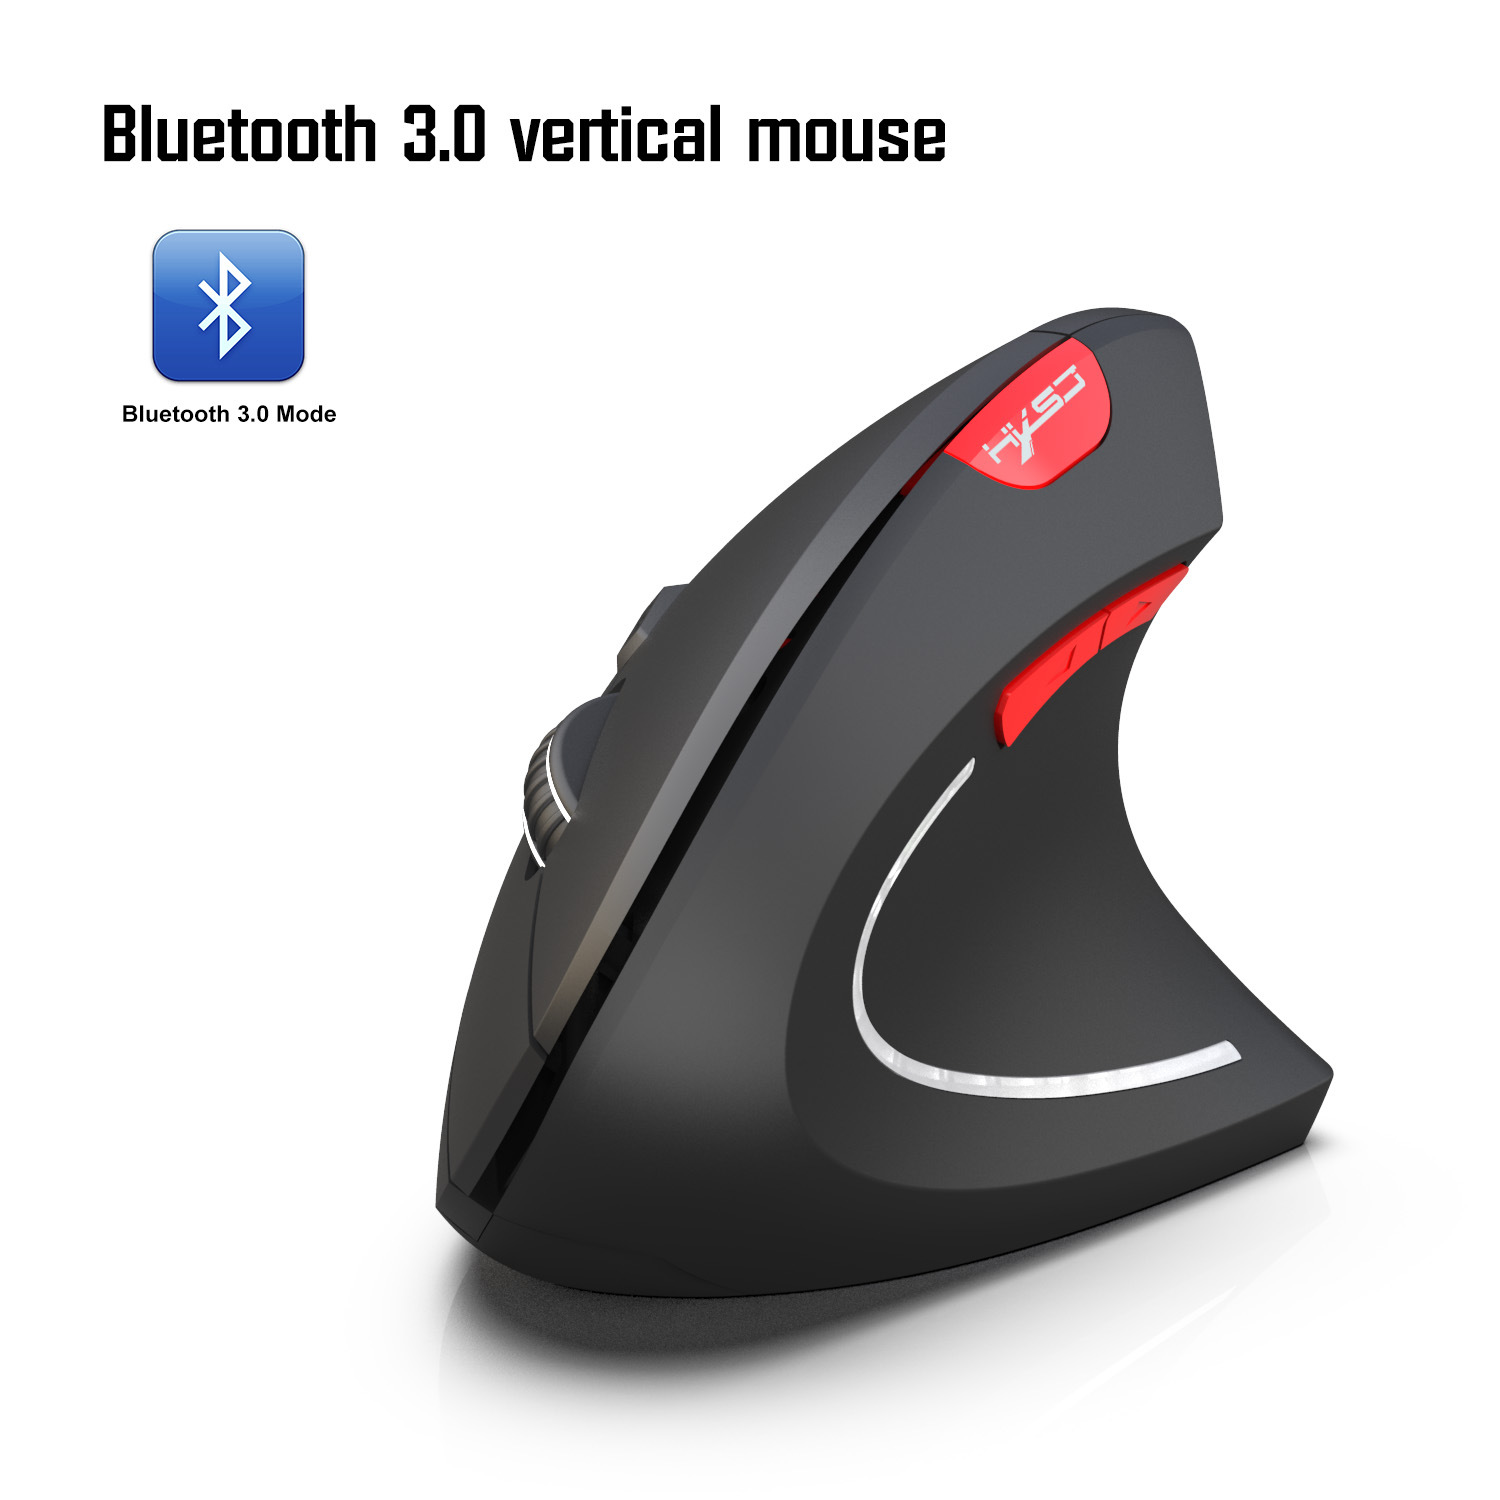 Bluetooth Vertical Mouse Ergonomics 800/1600/2400DPI Prevention Mouse Hand Game Office Mouse PC Notebook Accessories black